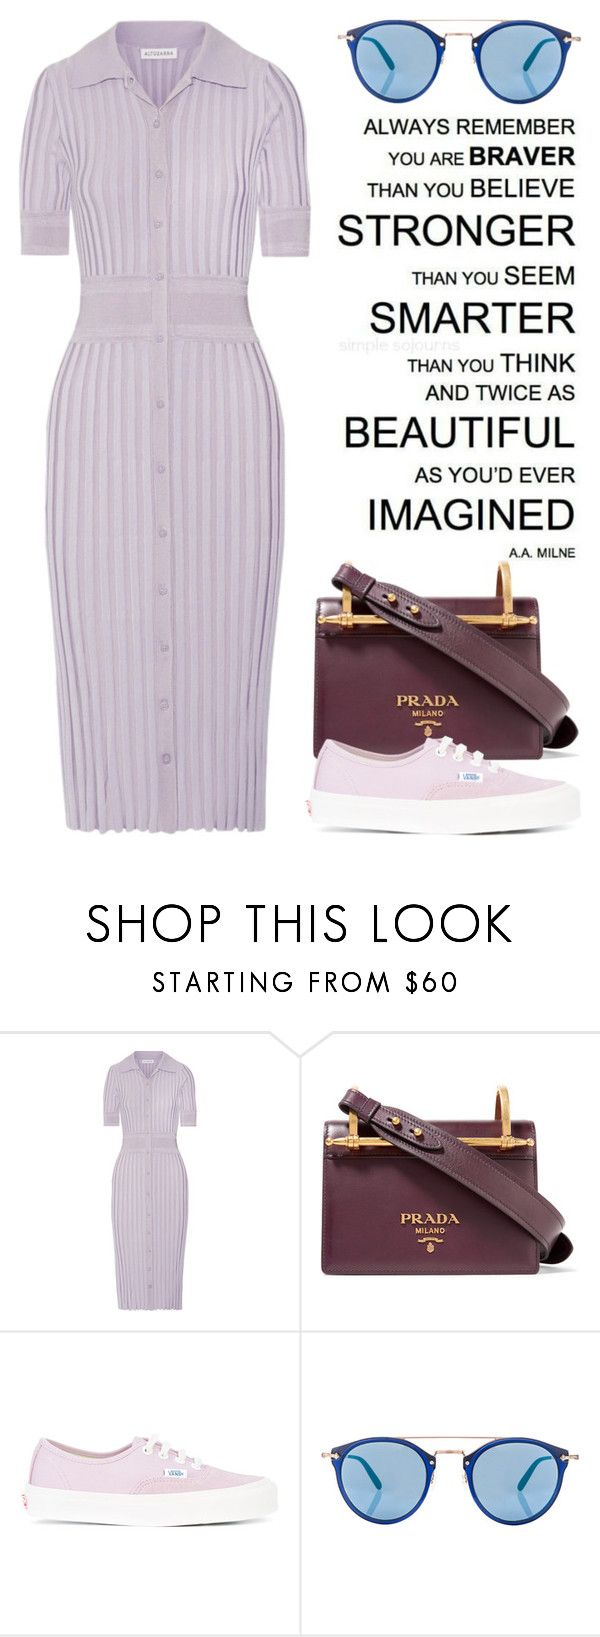 """""""Sep 3rd (tfp) 4277"""" by boxthoughts ❤ liked on Polyvore featuring Altuzarra, Prada, Vans, Oliver Peoples and tfp"""